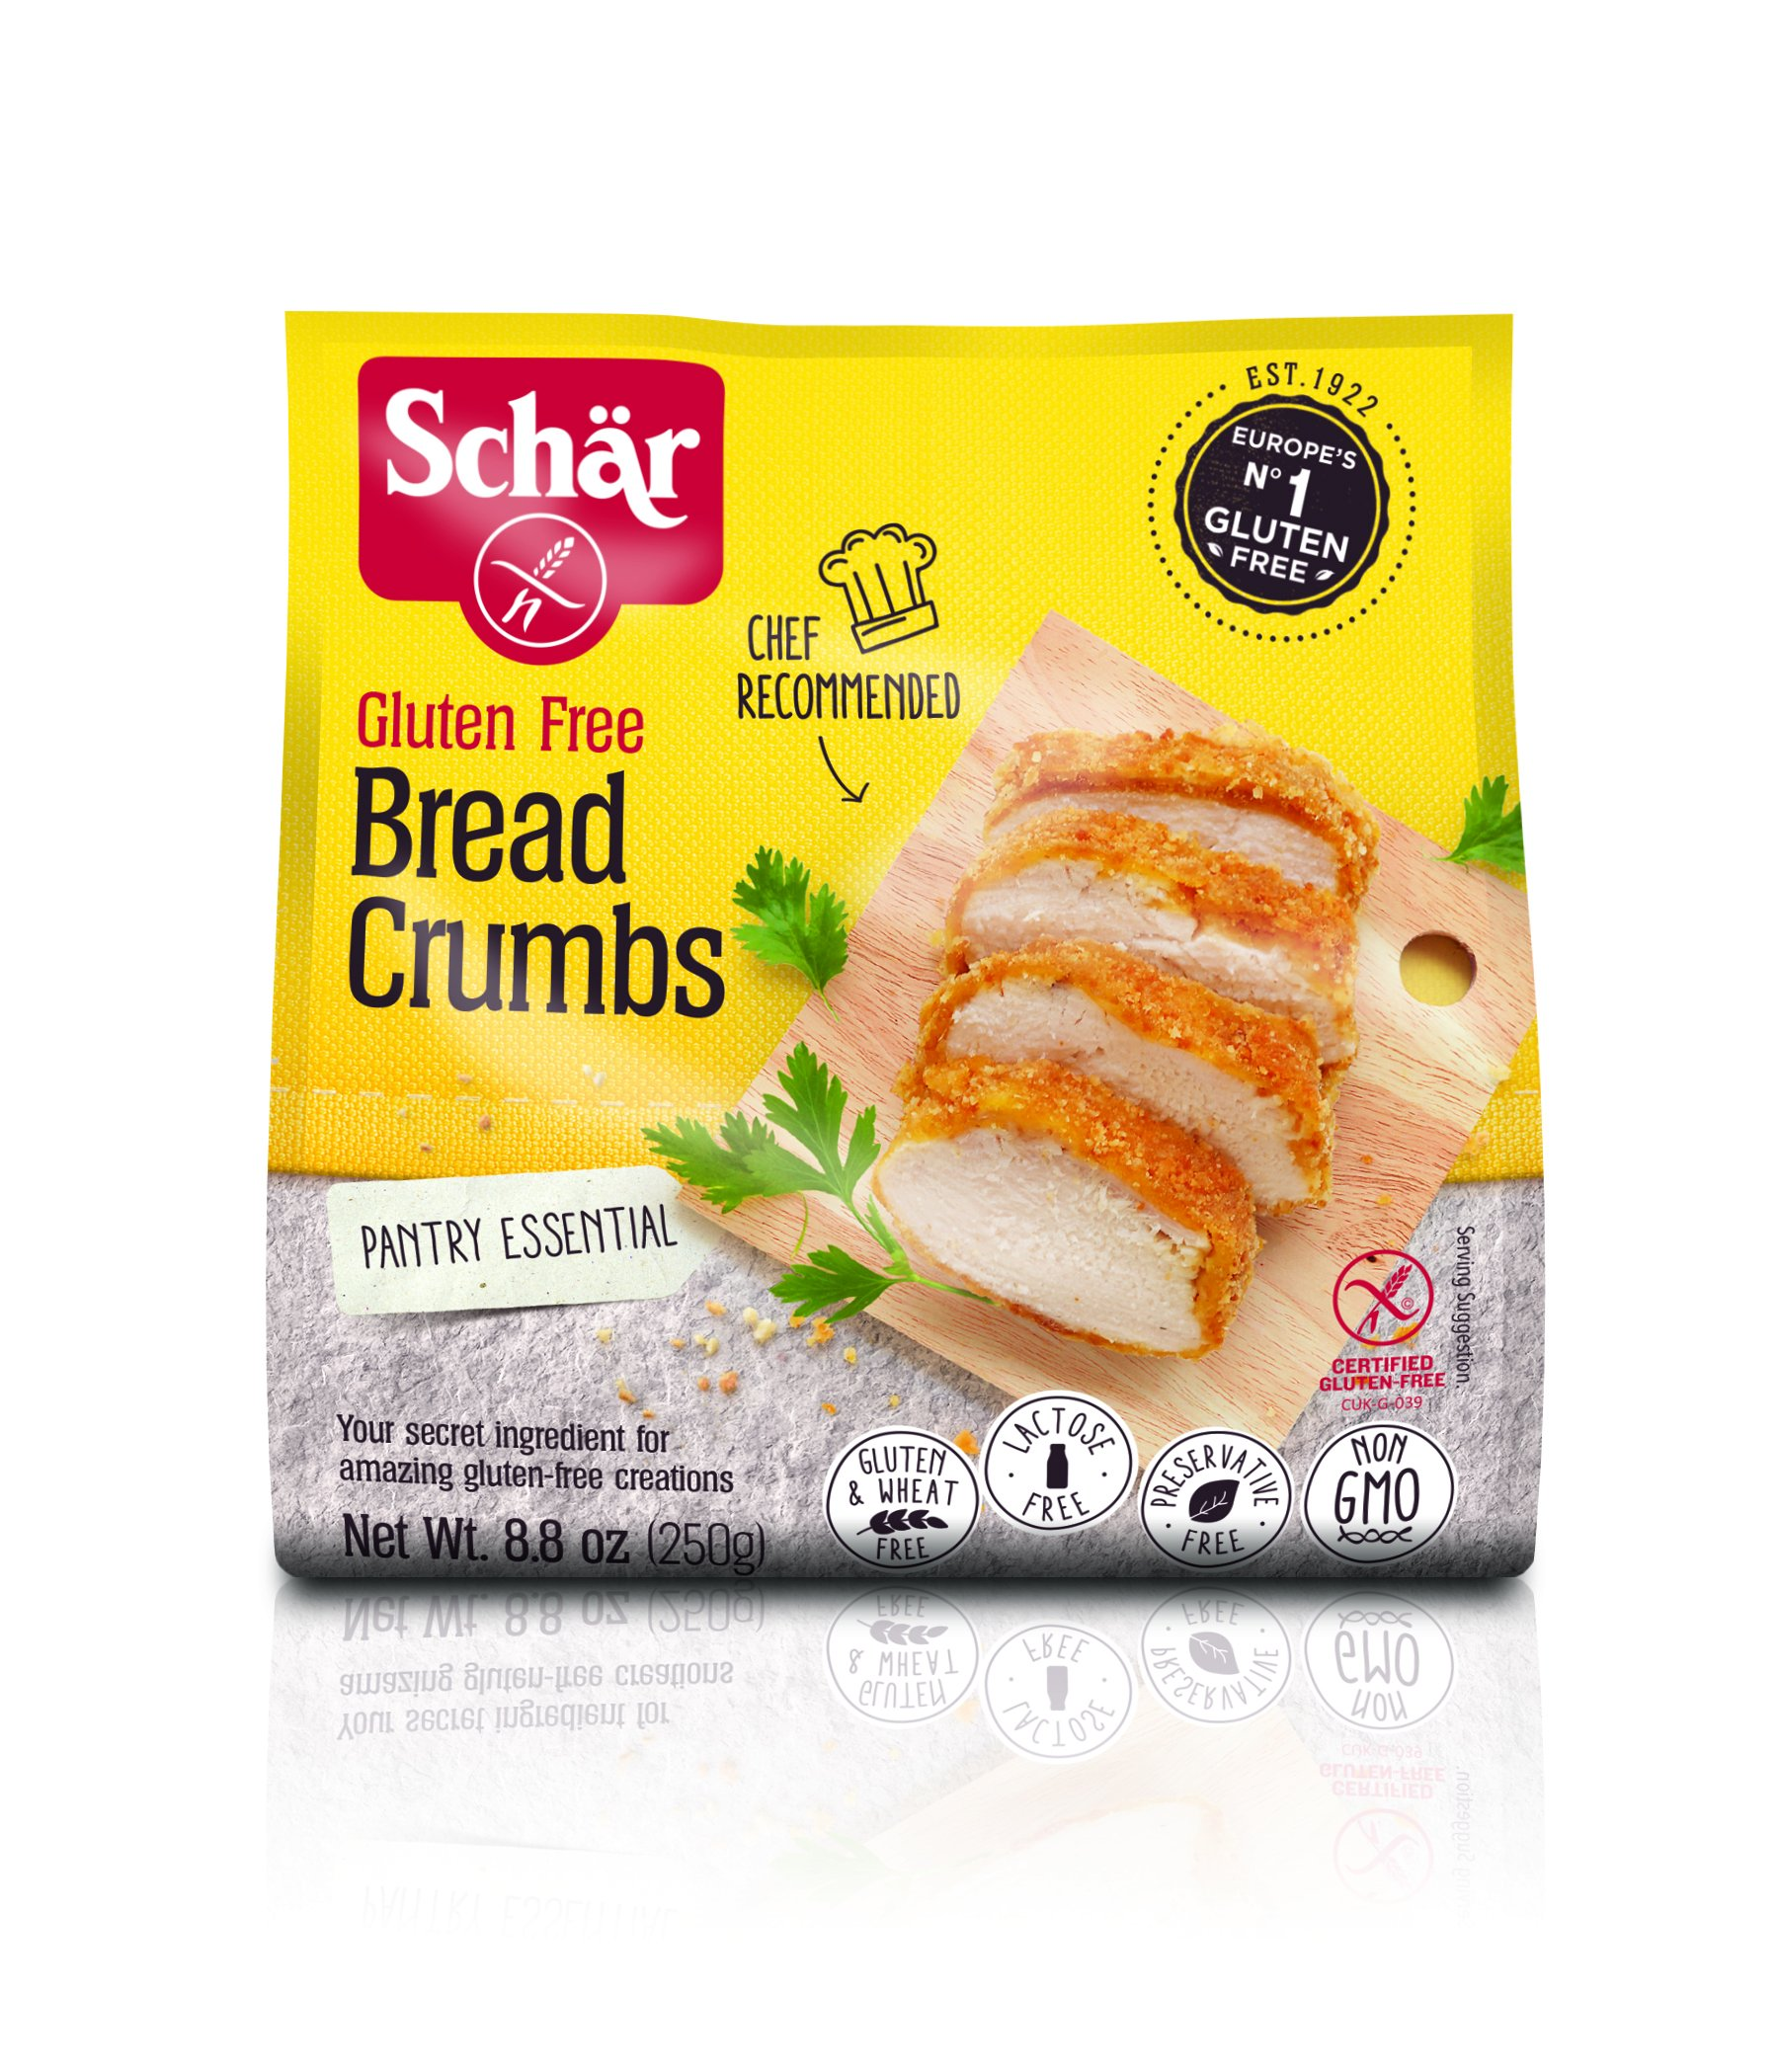 Schär Gluten Free Bread Crumbs, 8.8 oz., 12-Pack by Schar